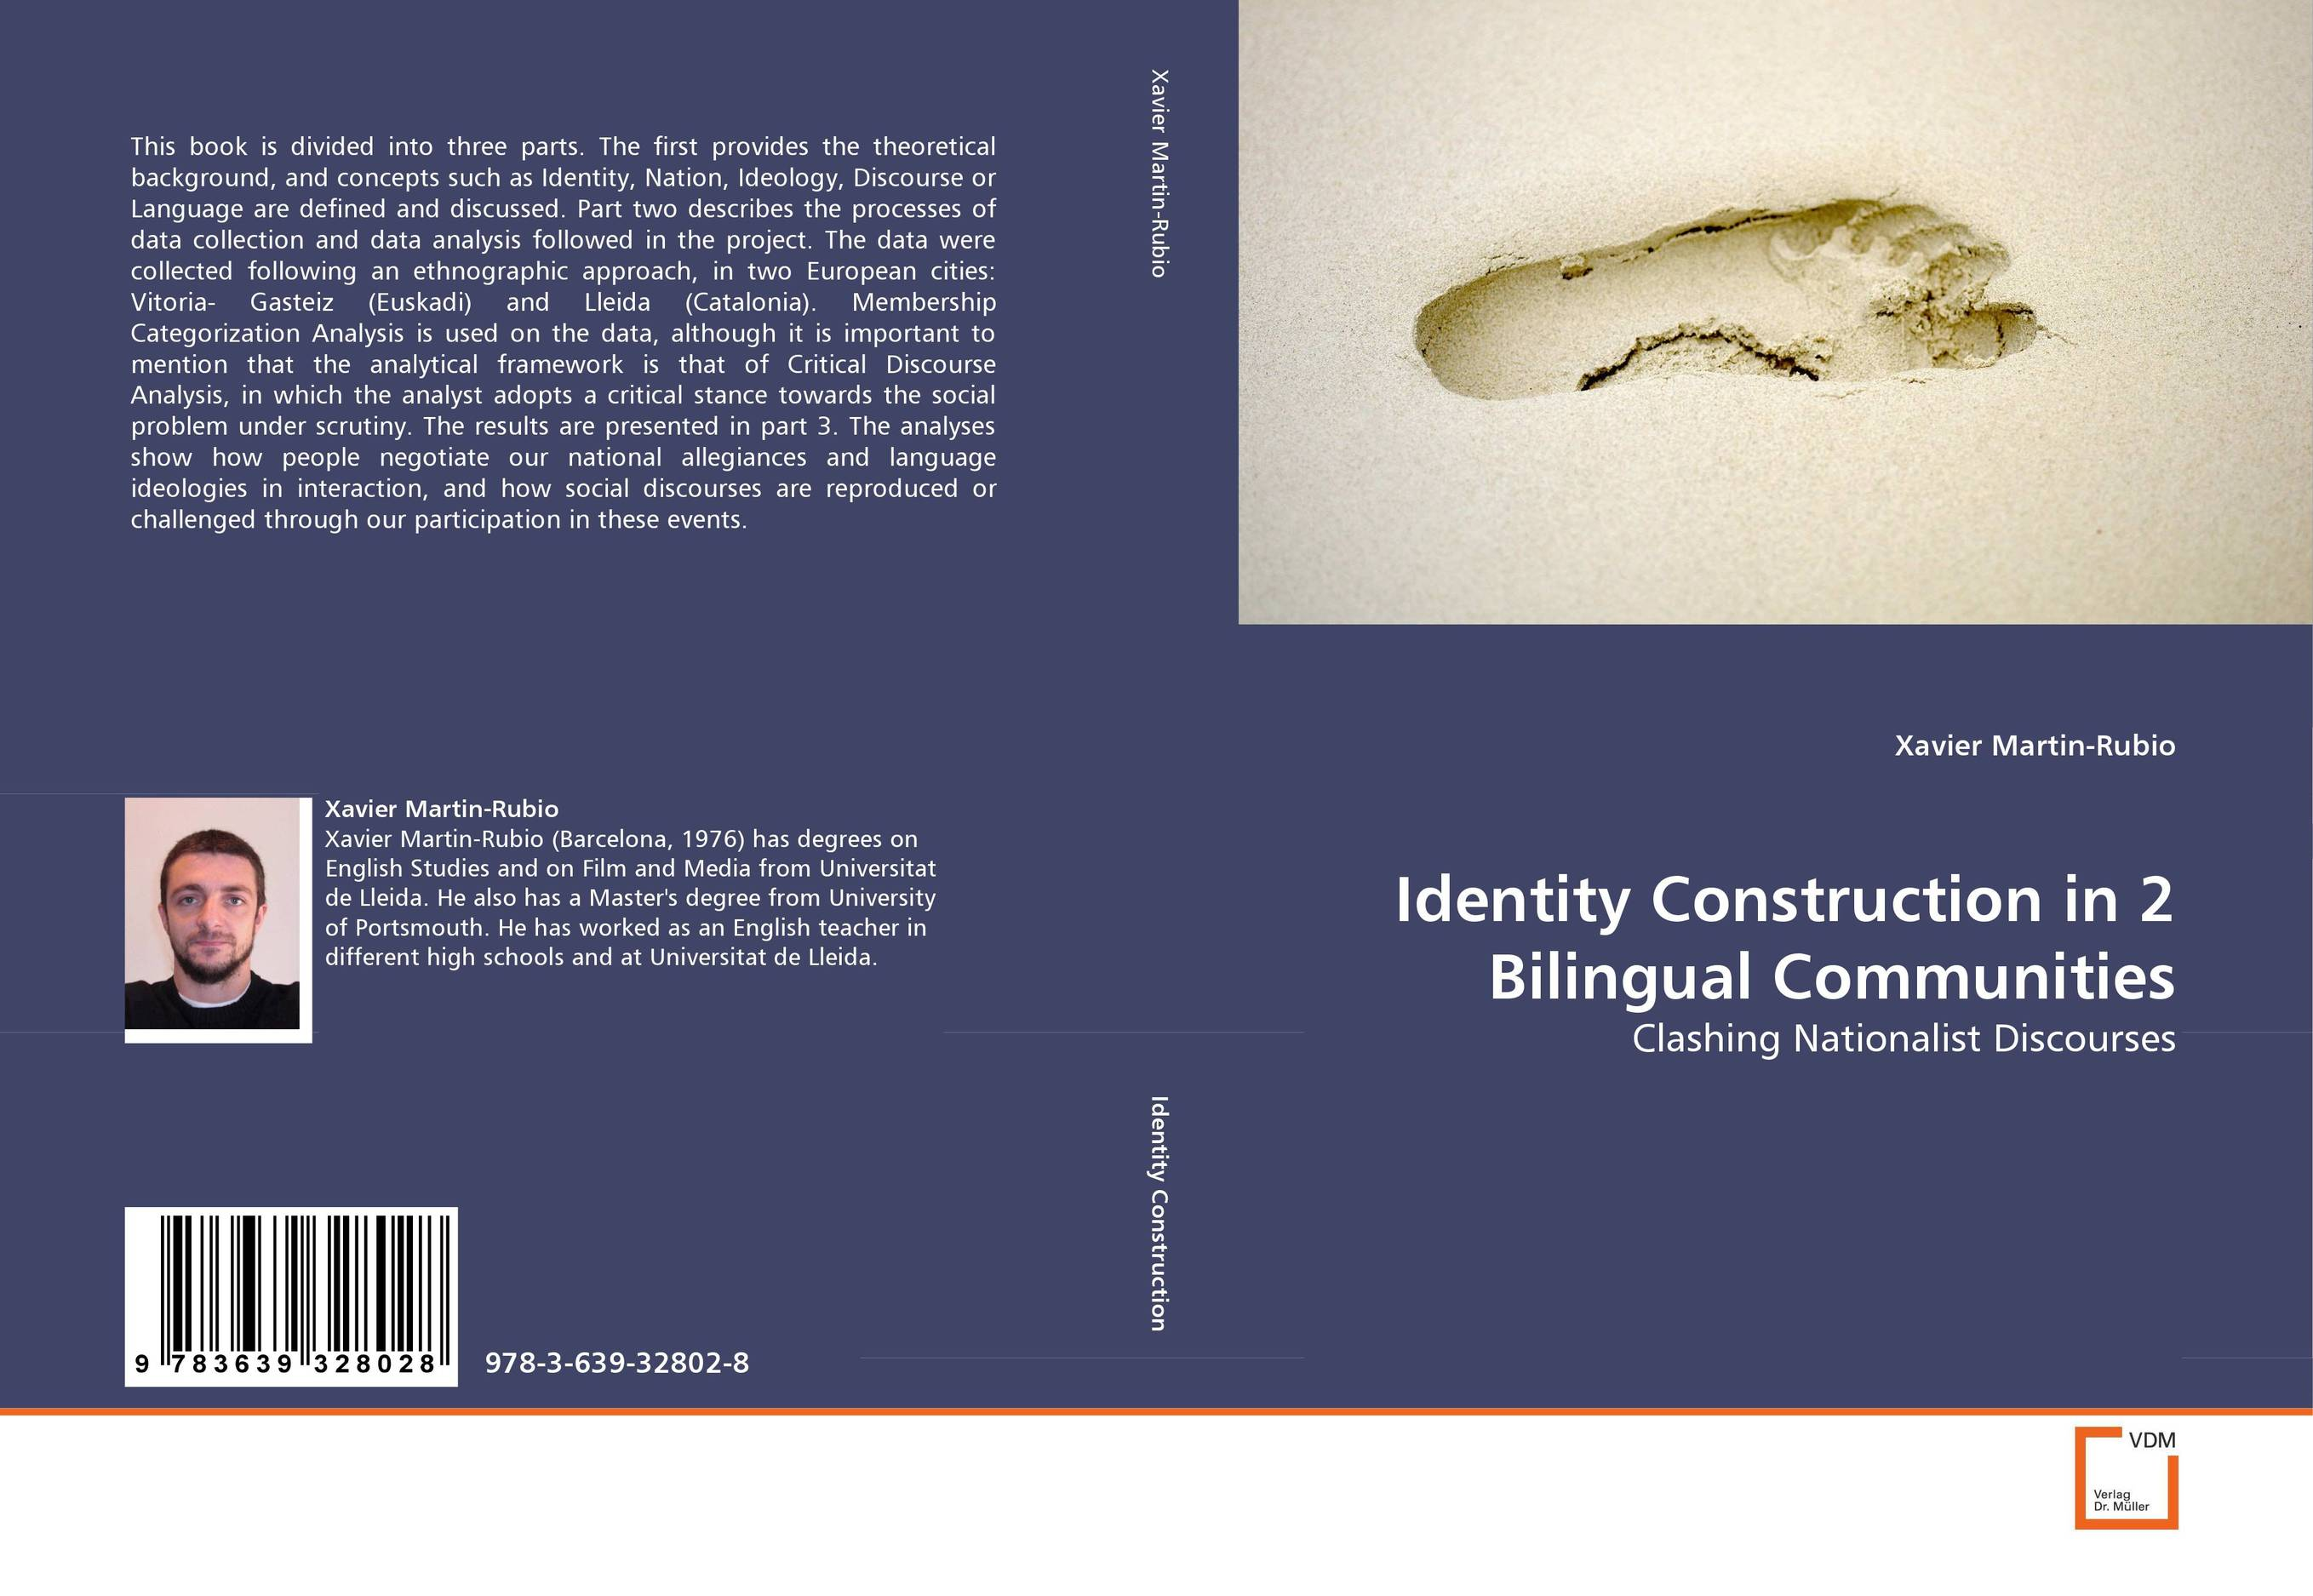 Identity Construction in 2 Bilingual Communities uzma rehman sufi shrines and identity construction in pakistan